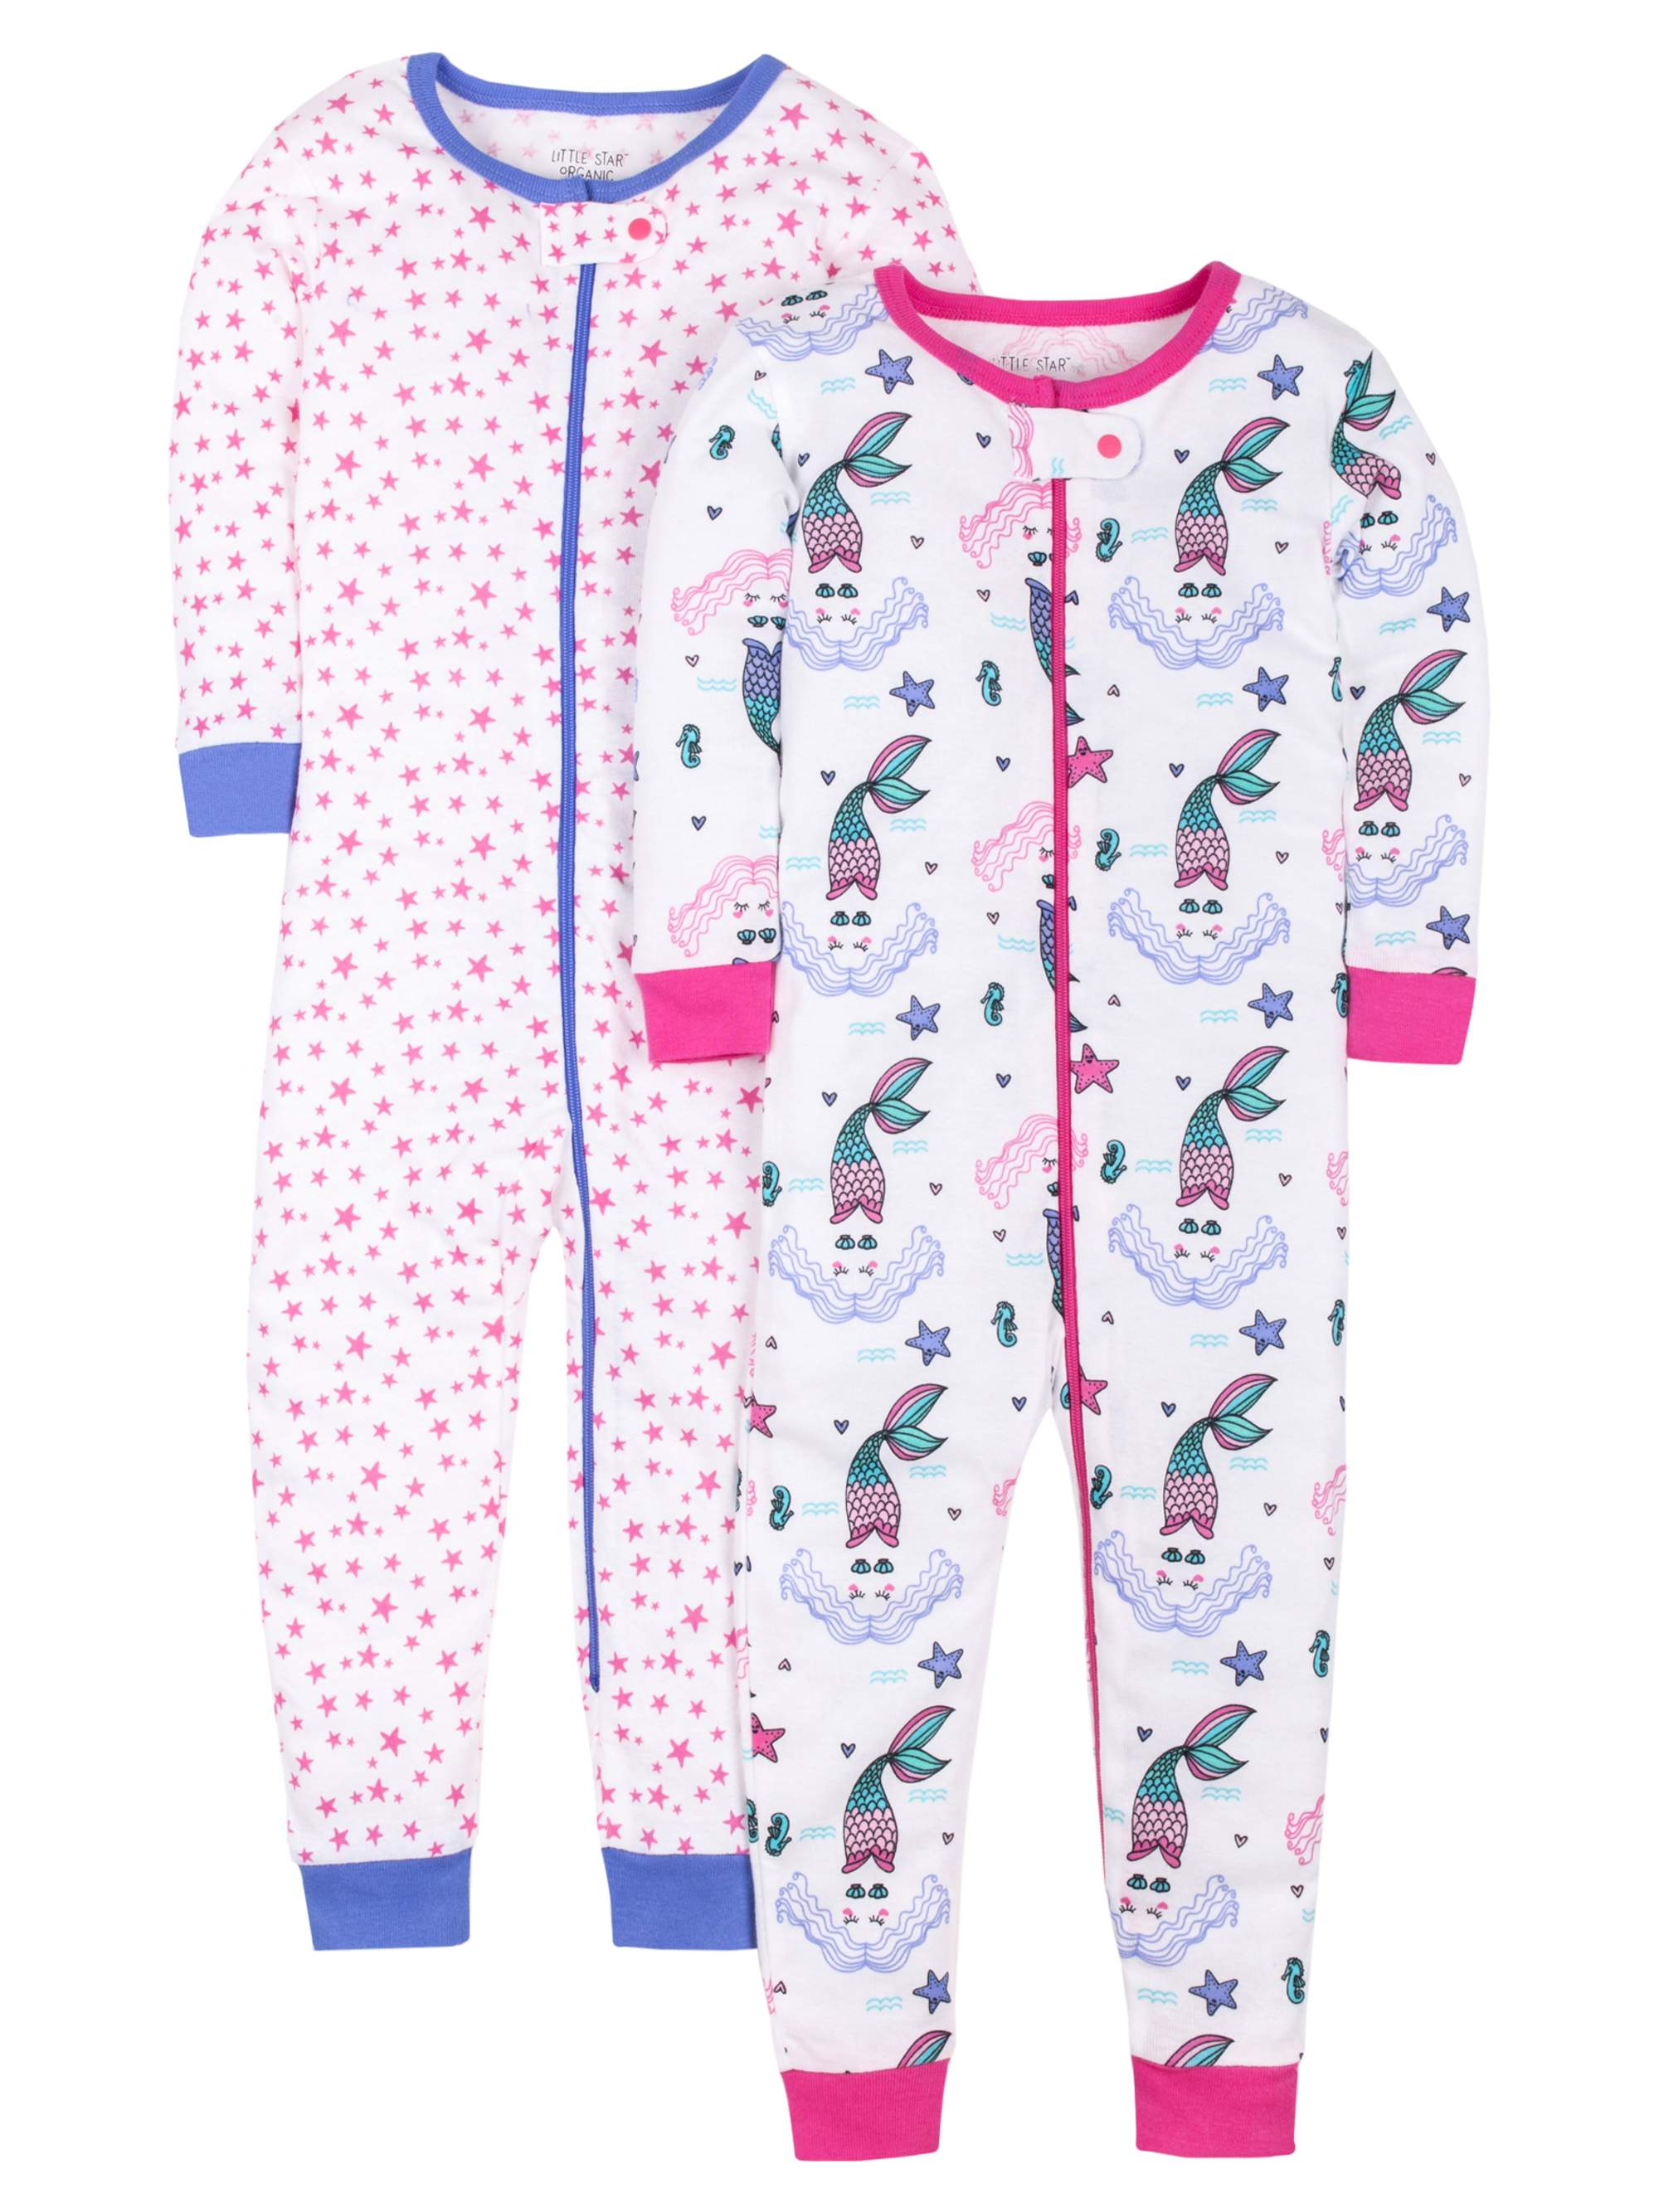 100% Organic Cotton Footless Stretchies Pajamas, 2-pack (Baby Girls and Toddler Girls)